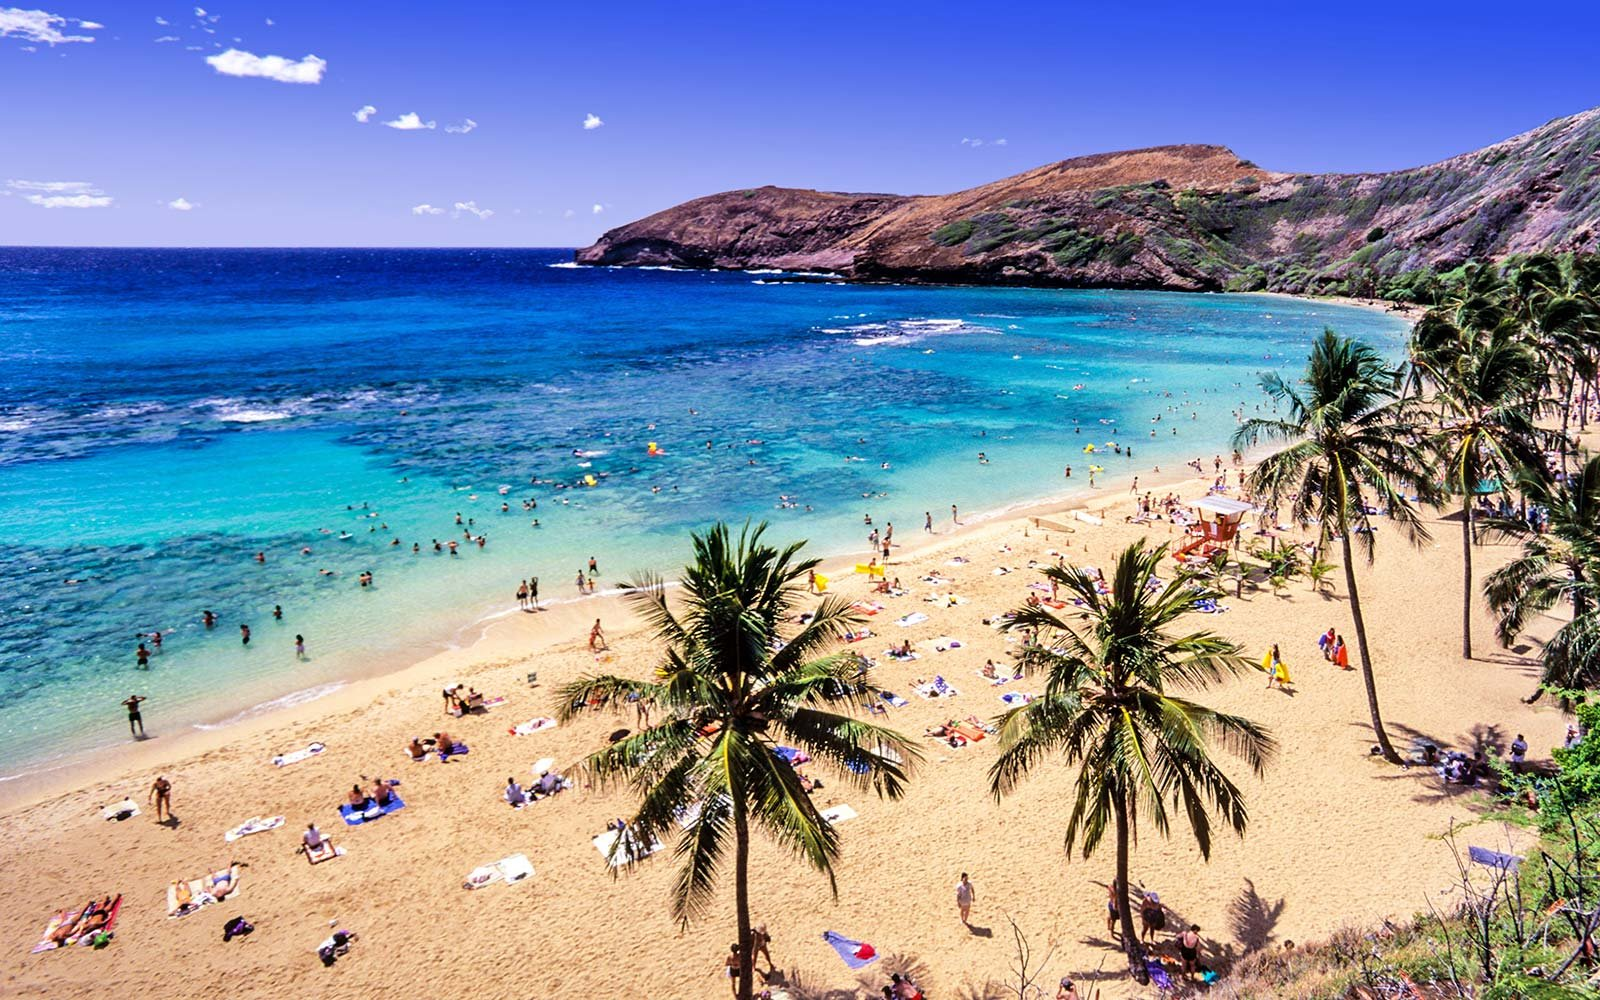 Fall Disney Wallpaper Cheap Flights To Hawaii Are Finally Here Starting At 344